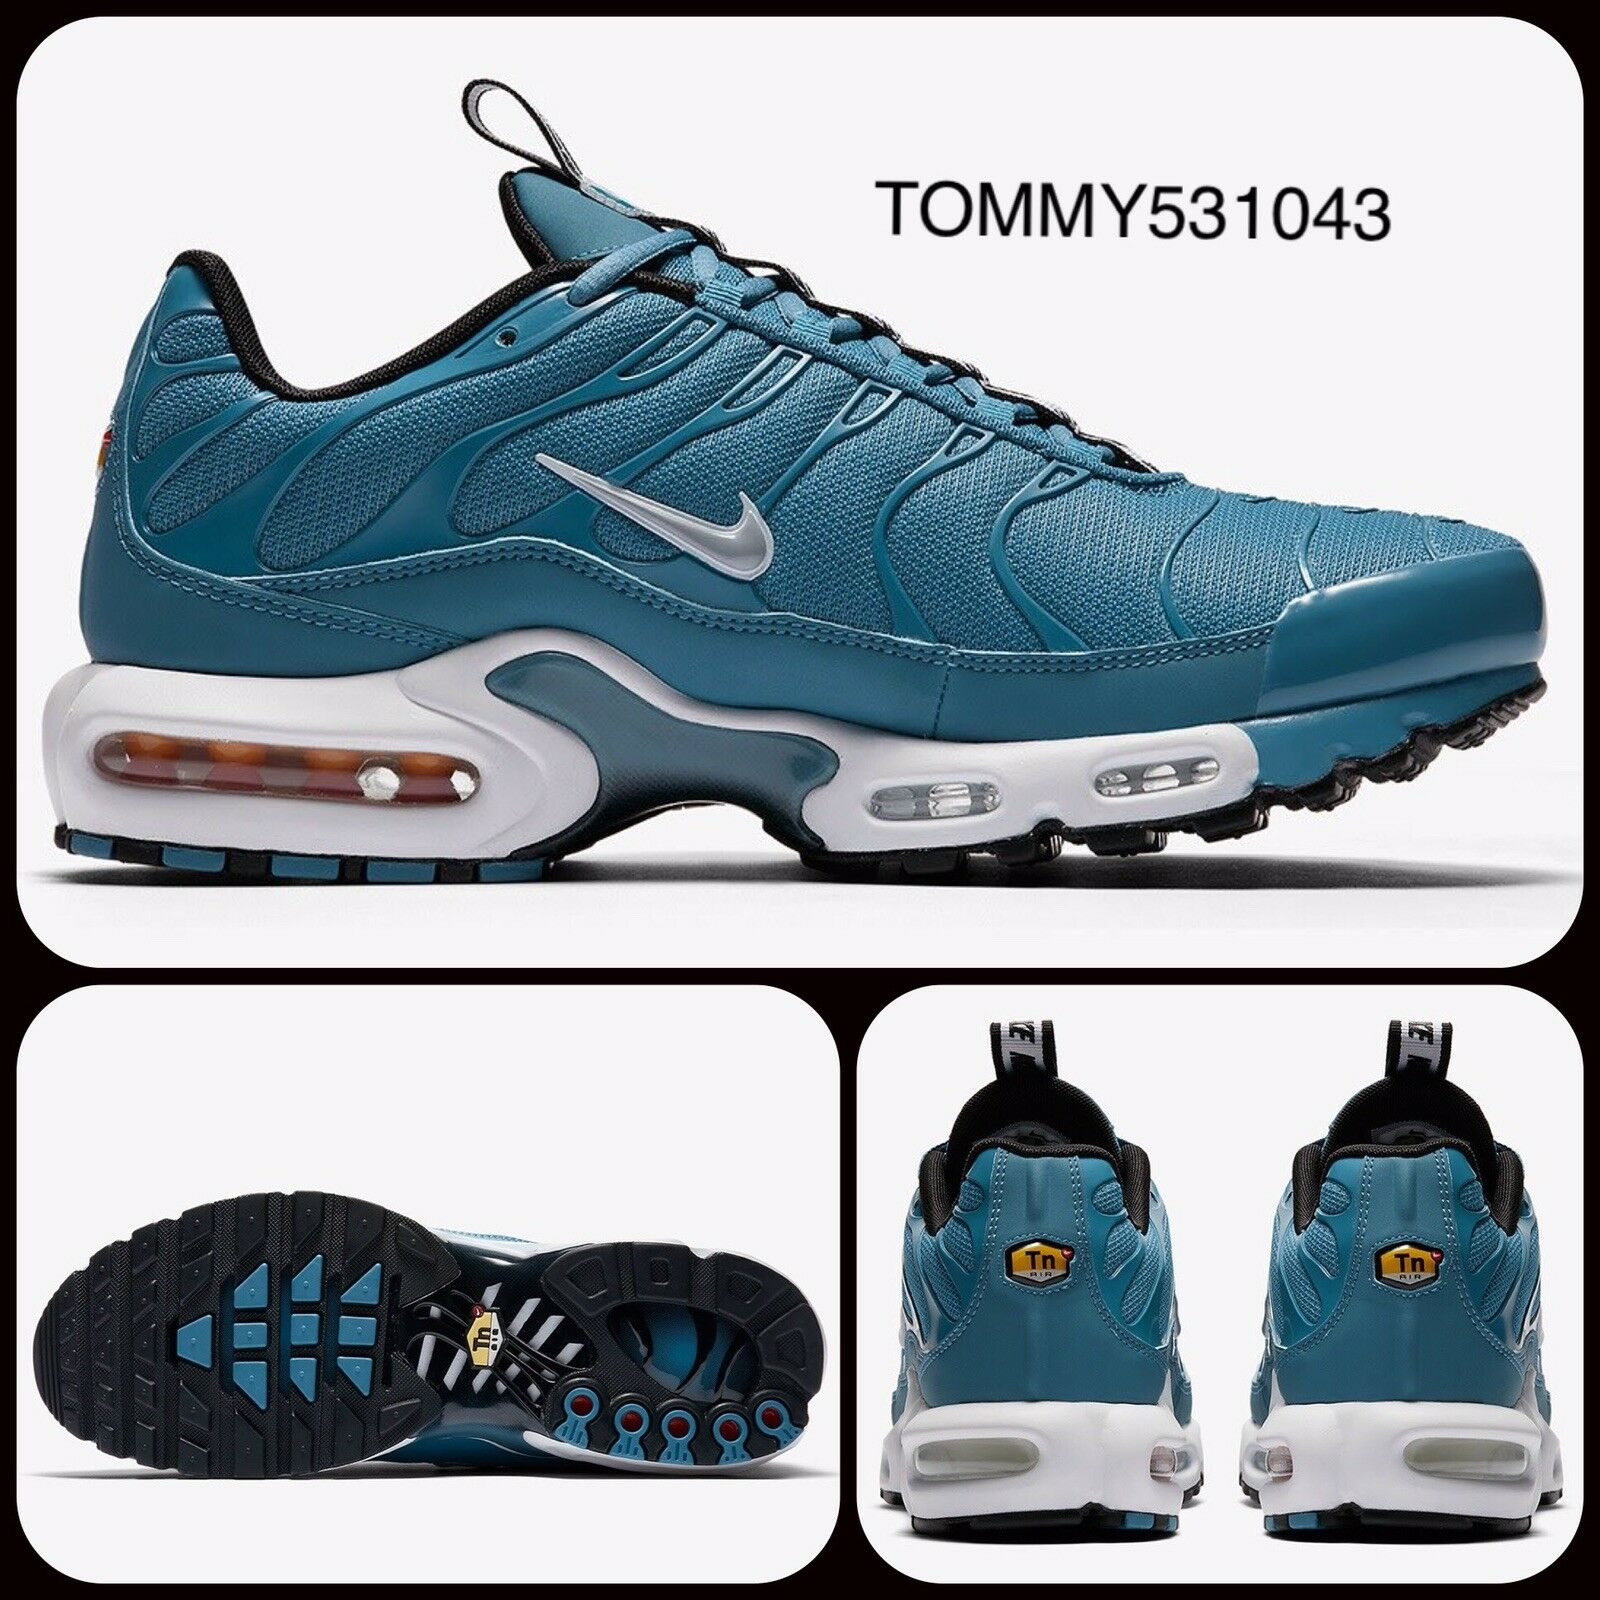 Nike Air Max Plus TN SE Pull-Tab Pack   UK 10 EU 45 US 11   AQ4128-400